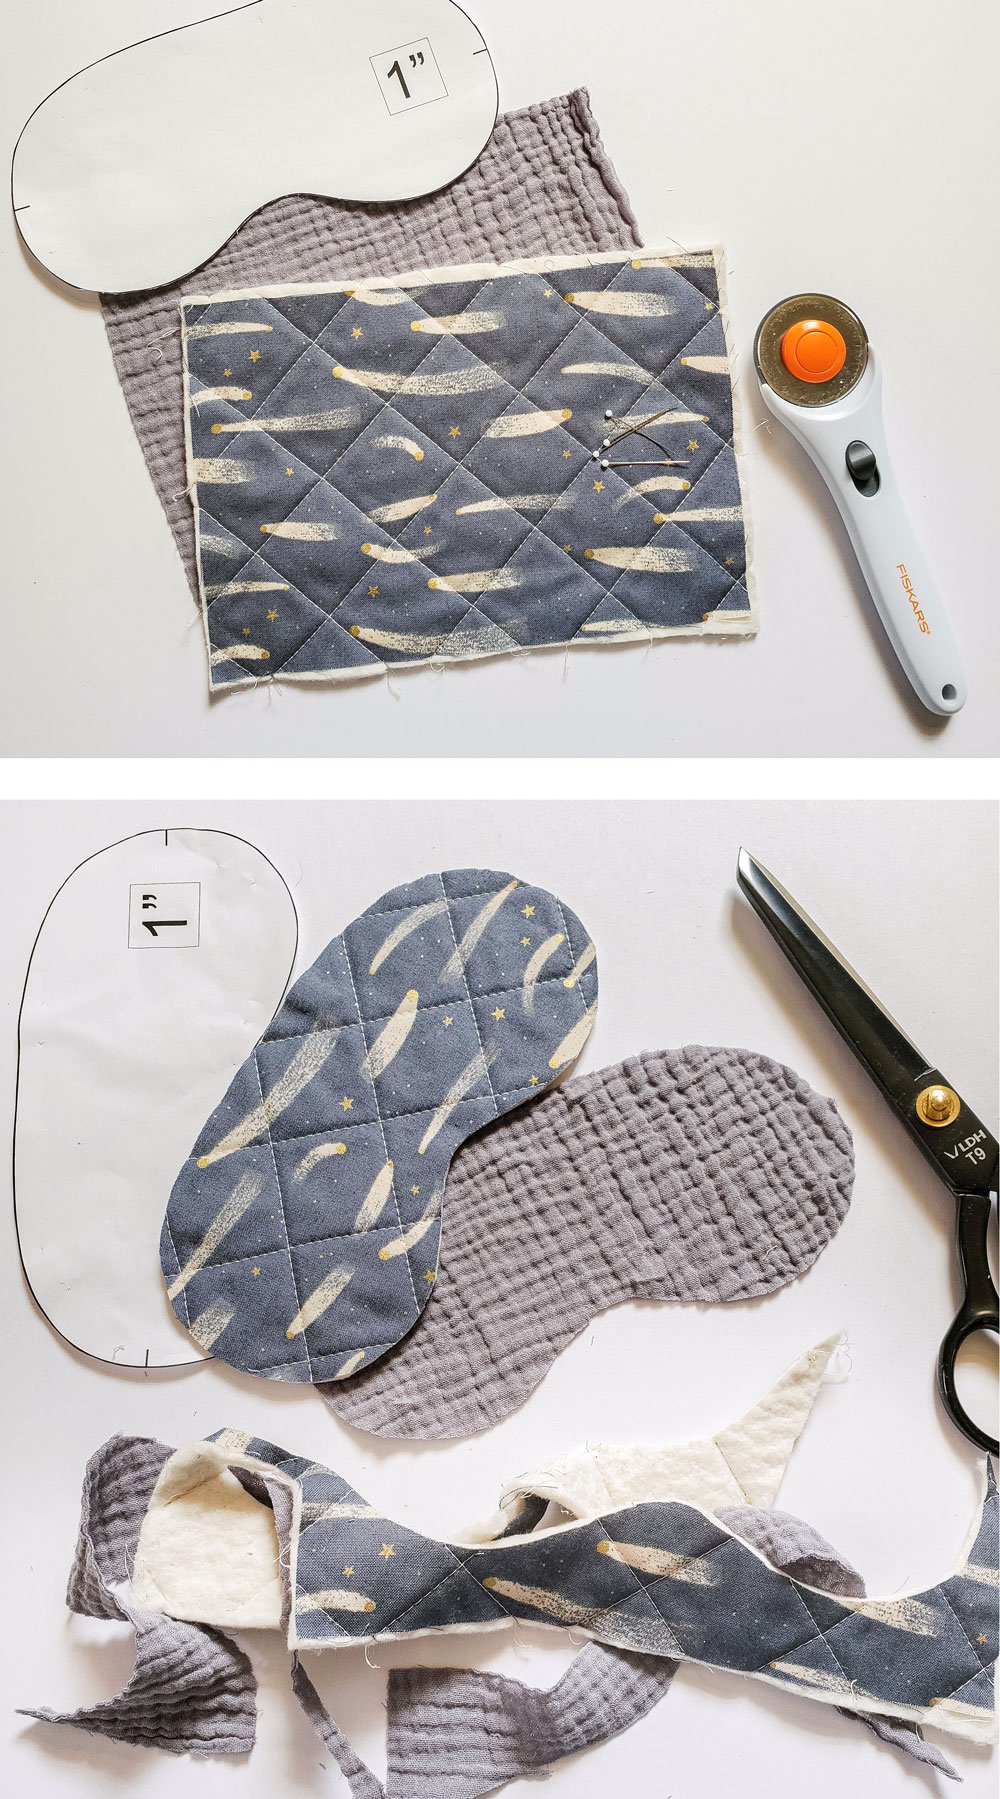 Use your scrap fabric to make this free quilted sleep mask! Step by step instructions for a beginner-friendly tutorial. | suzyquilts.com #sewingtutorial #DIY